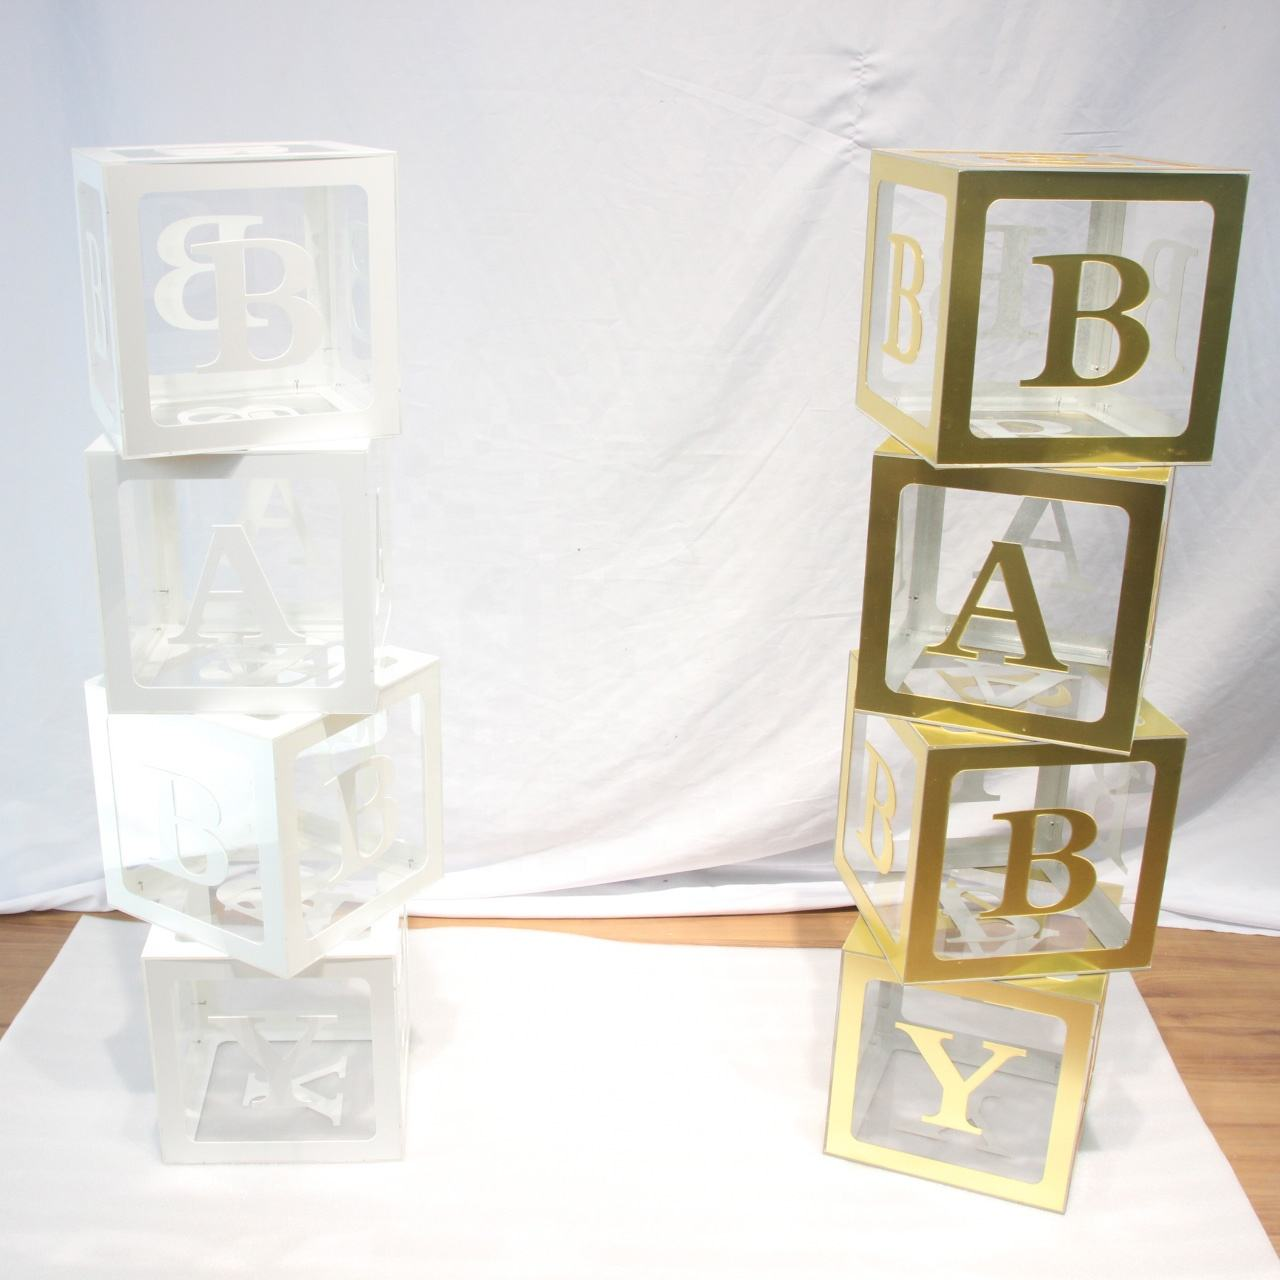 Iangel baby letters acrylic baby blocks baby shower